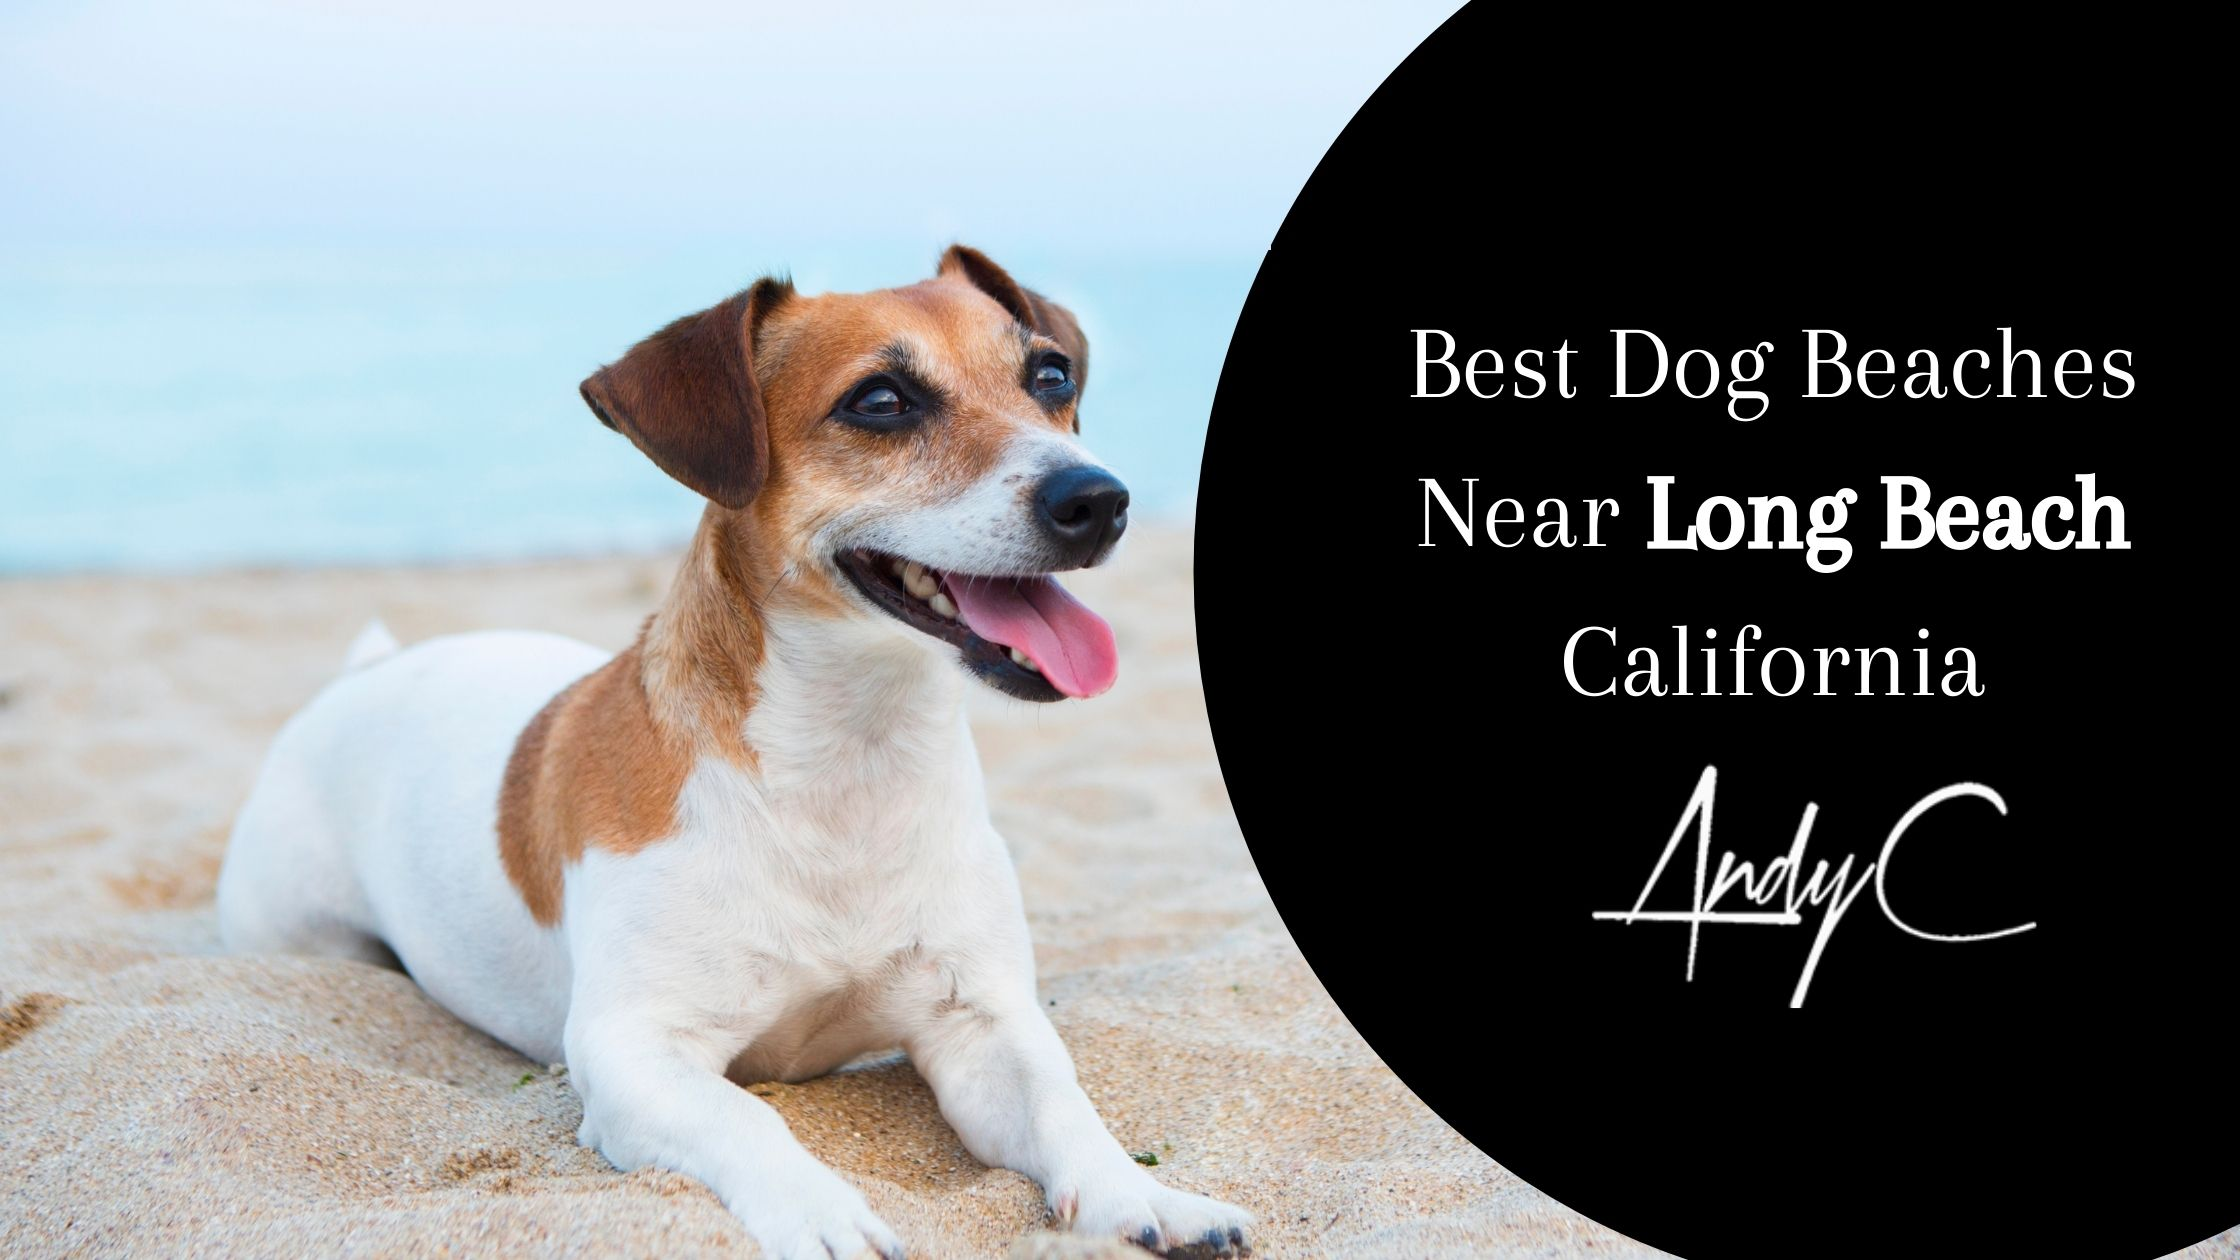 Best Dog Beaches Near Long Beach California